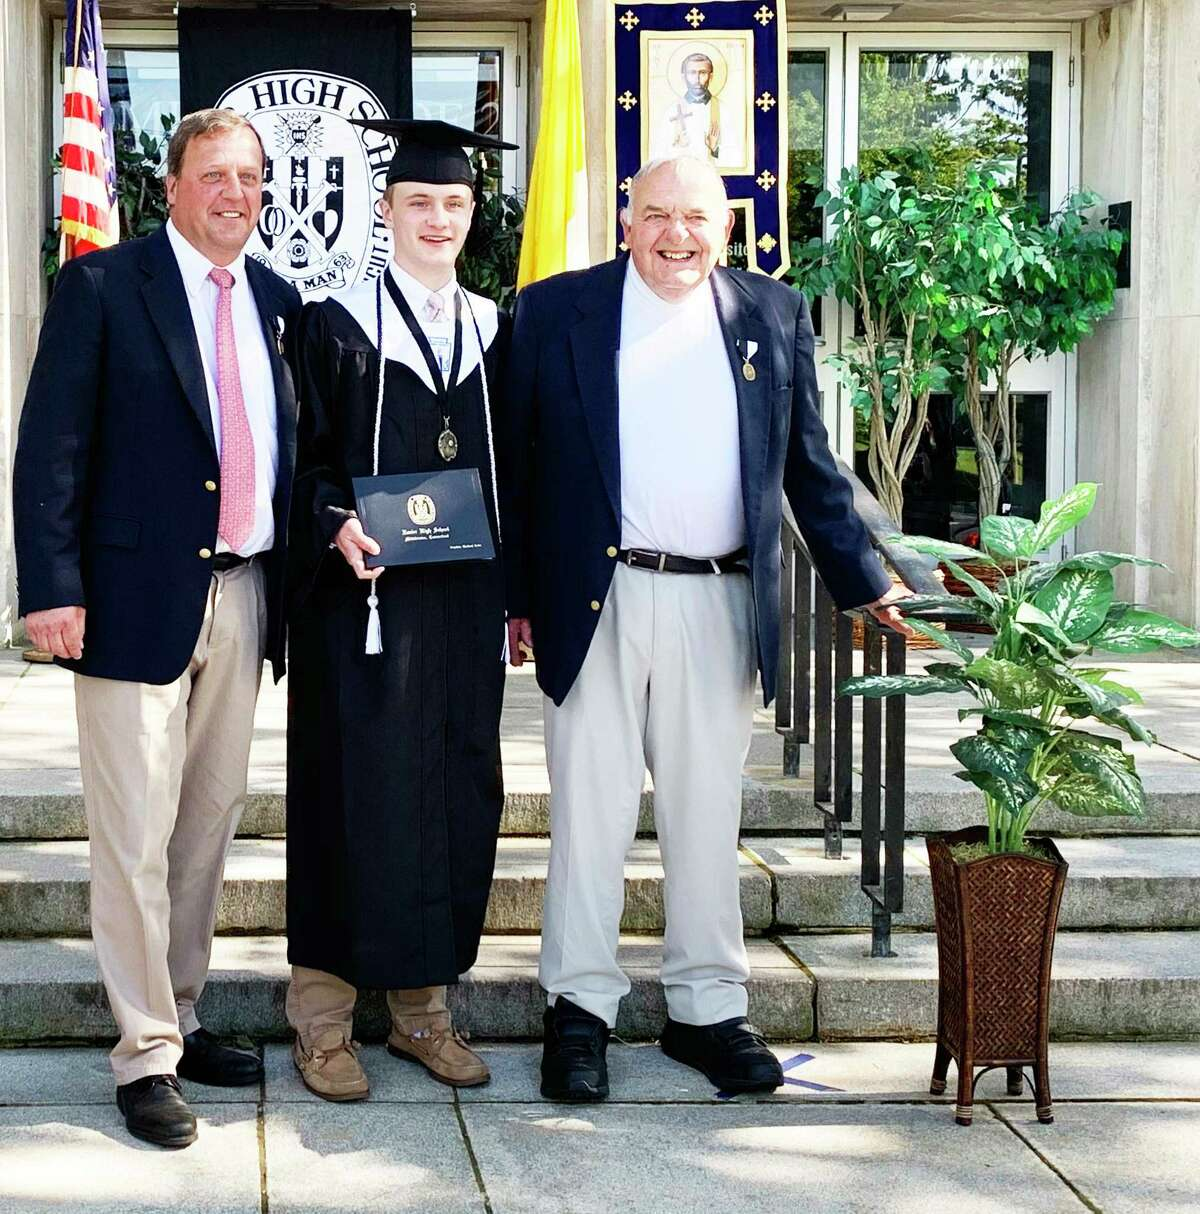 Xavier High School graduate Stephen Kohs, center, is seen with his father, Mike Kohs, and grandfather, Artie Kohs.